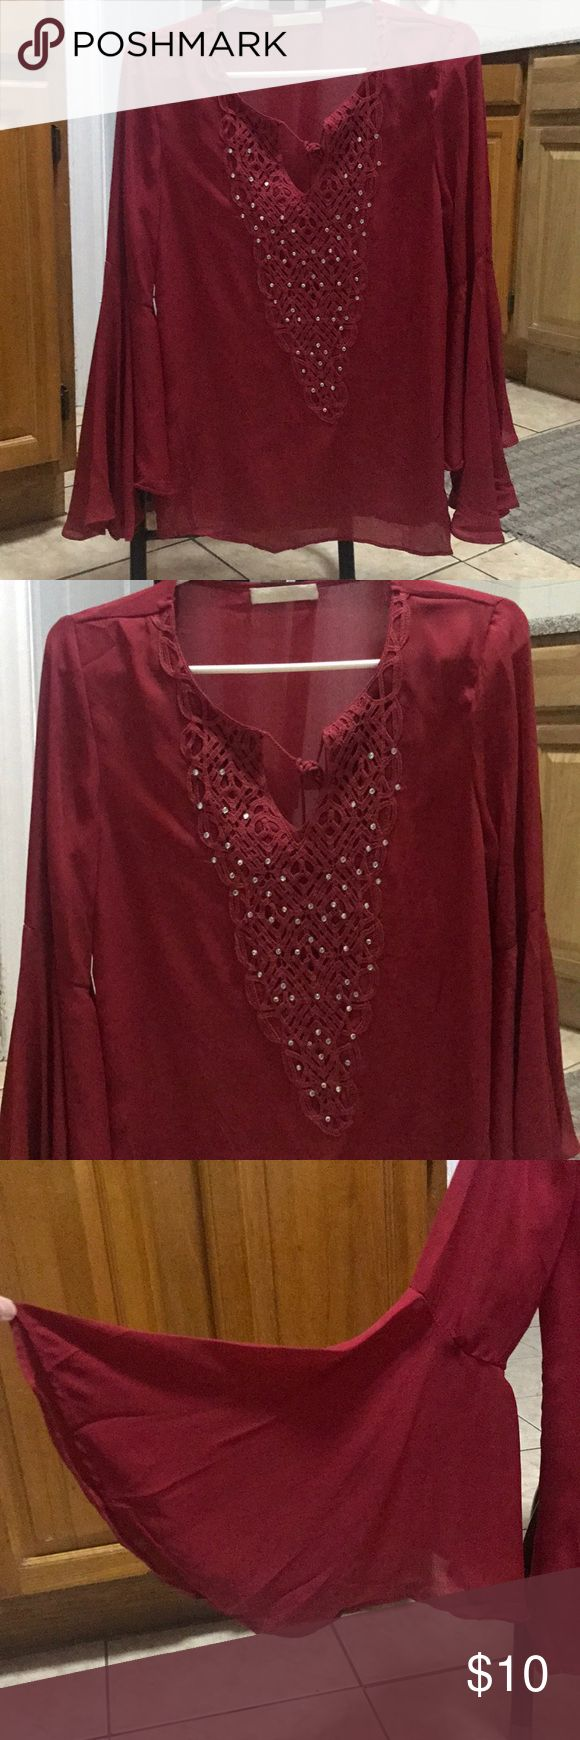 Women's Blouse This is a beautiful red colored shirt with silver diamond embellishments on top. There is a tassel string that connects the from and the shirt has bell sleeves. It's the perfect addition for your Christmas and holiday collection! #red#christmas#festive#holidays#womenswear#blouse#beautiful#fashion Tops Blouses